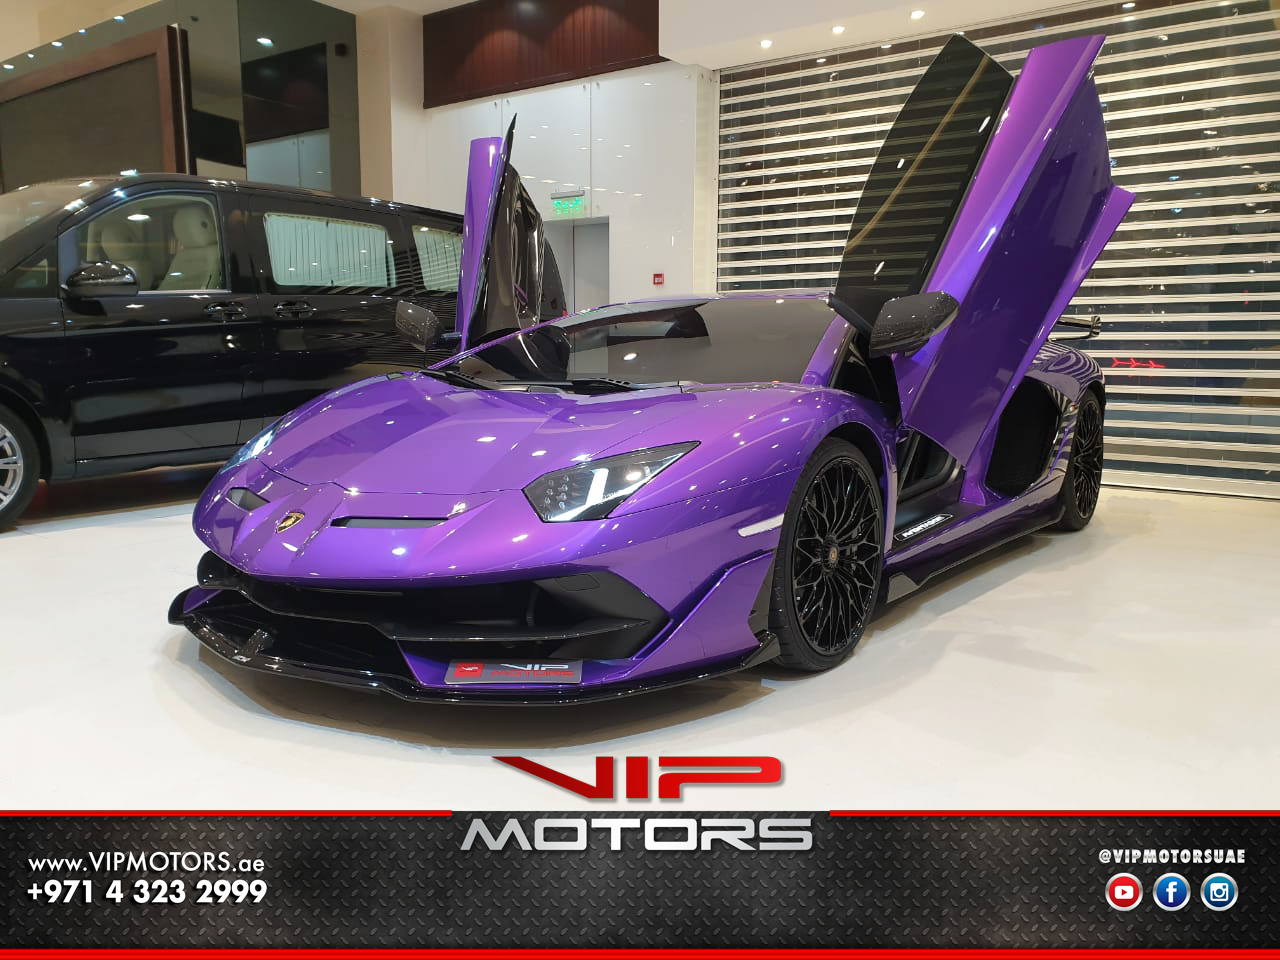 Lamborghini-Aventador-SVJ-Purple-2020-Front-Side-View-Vip-Motors